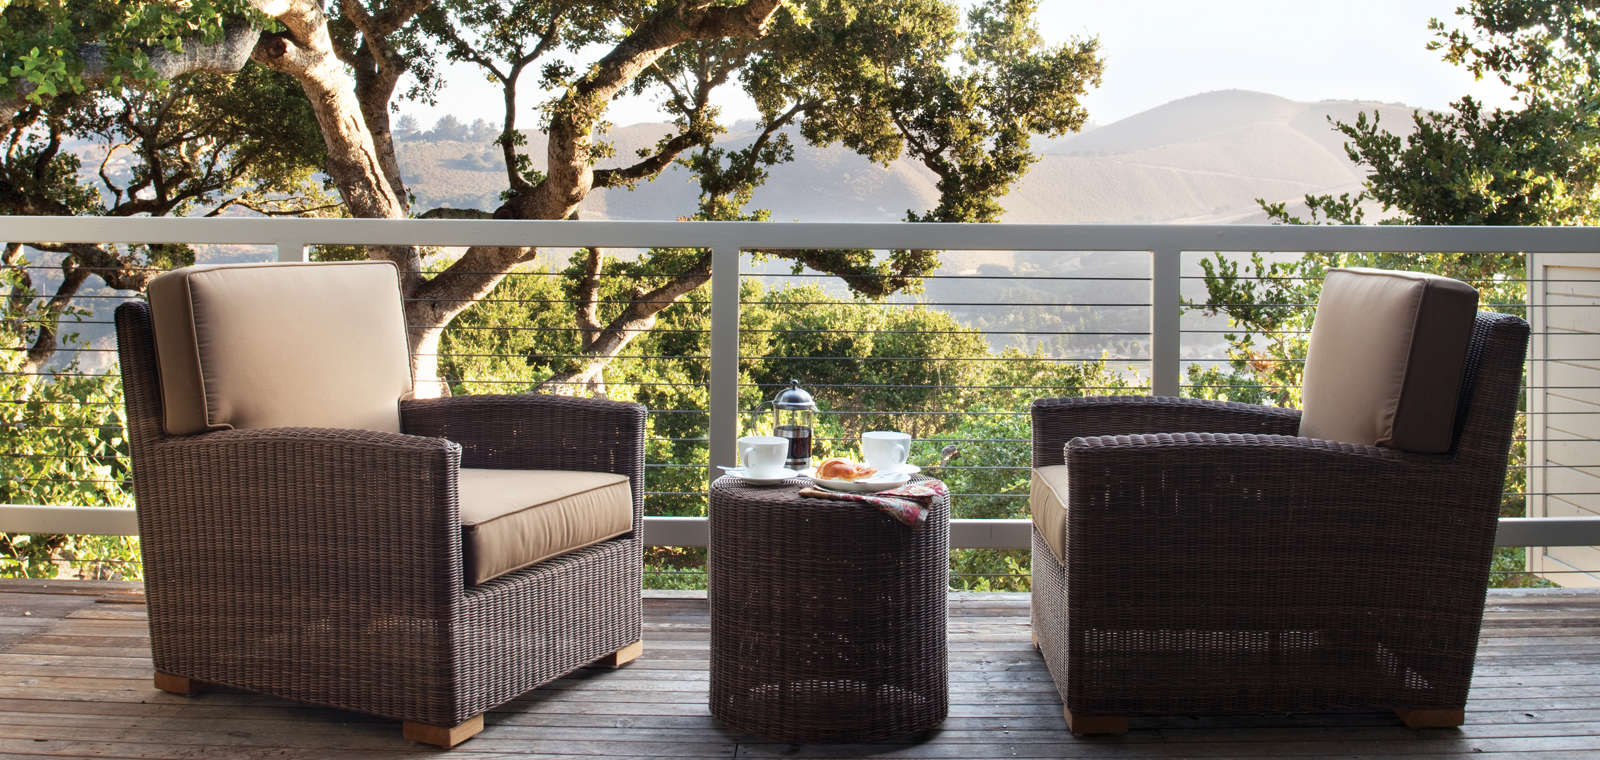 Carmel Valley Ranch_Accommodations_Hilltop Ranch Suite_Balcony